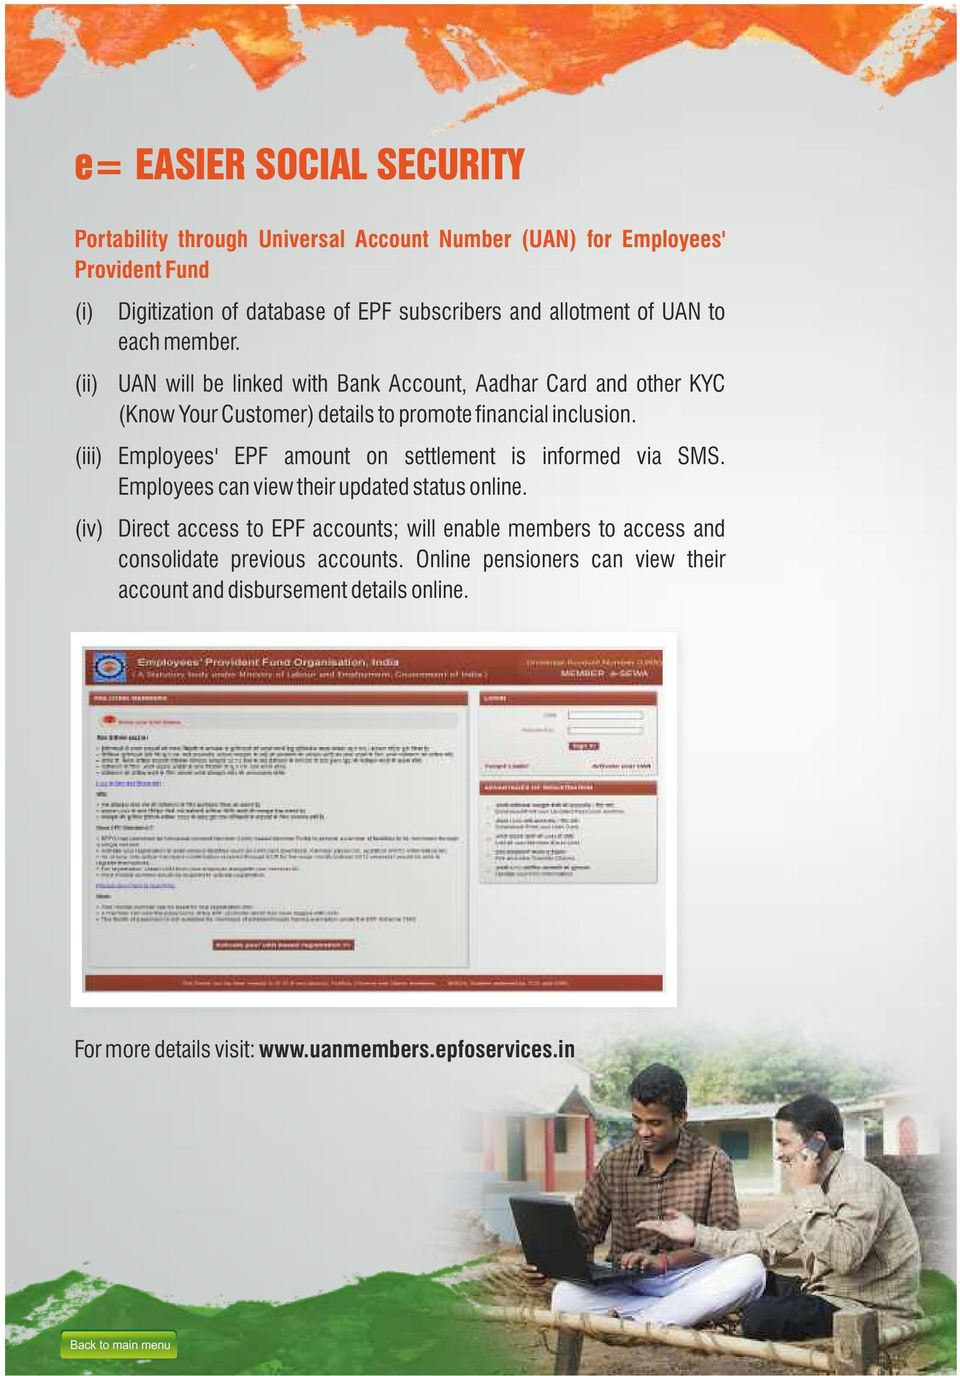 (iii) Employees' EPF amount on settlement is informed via SMS. Employees can view their updated status online.